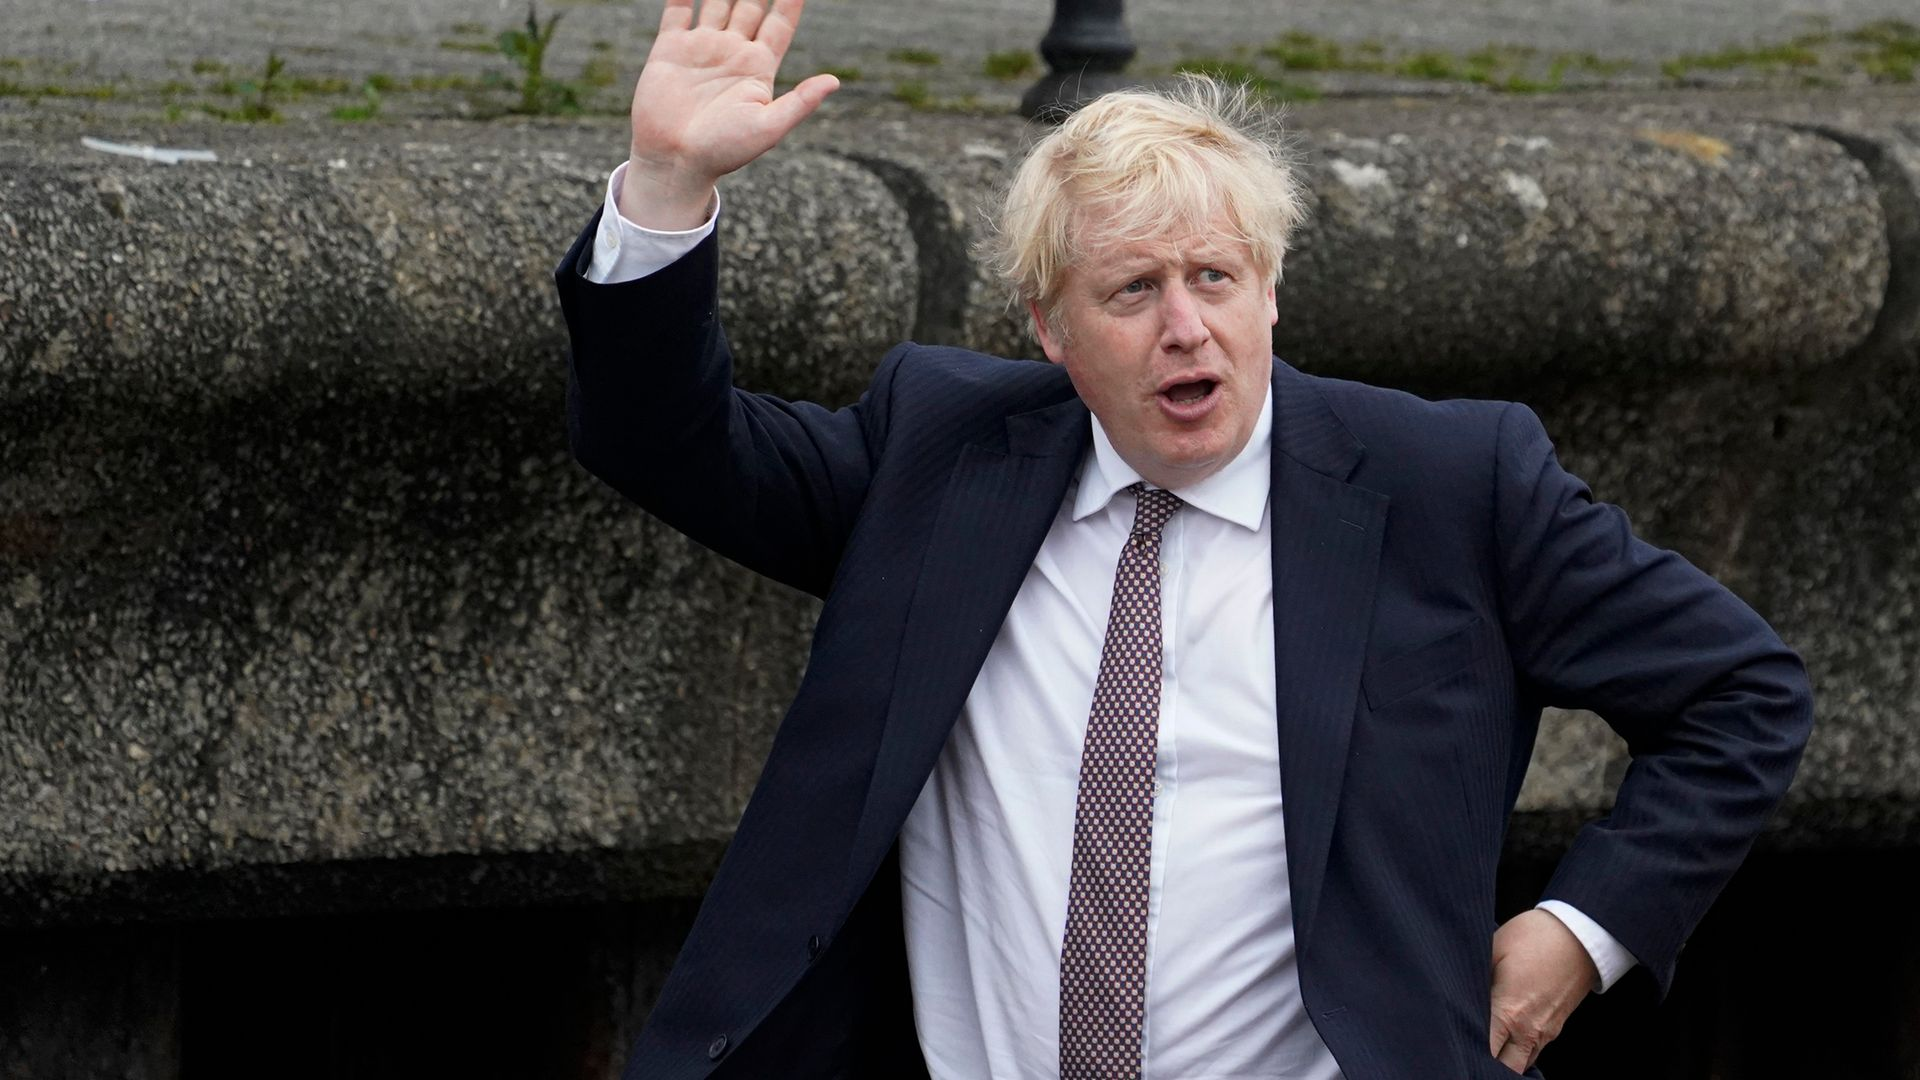 Boris Johnson waves to onlookers during a visit to Falmouth ahead of the G7 summit - Credit: Getty Images